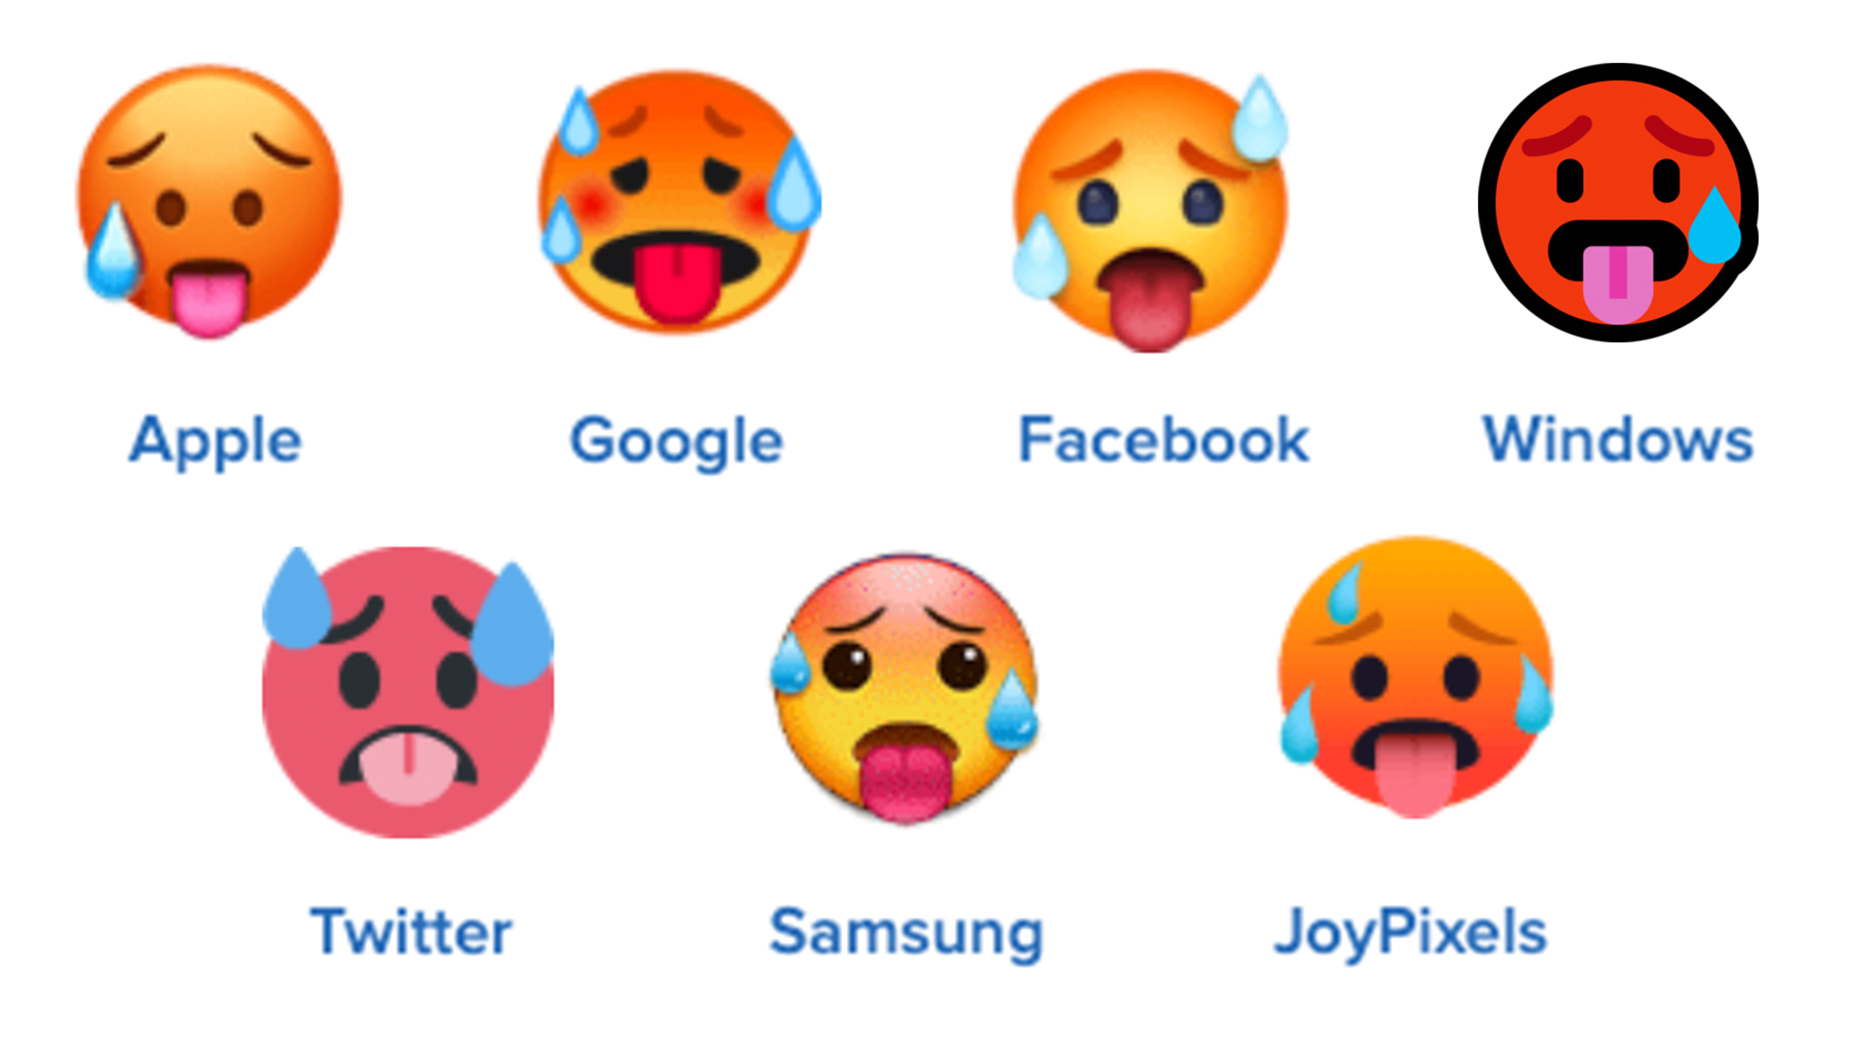 hot face emojis on different platforms